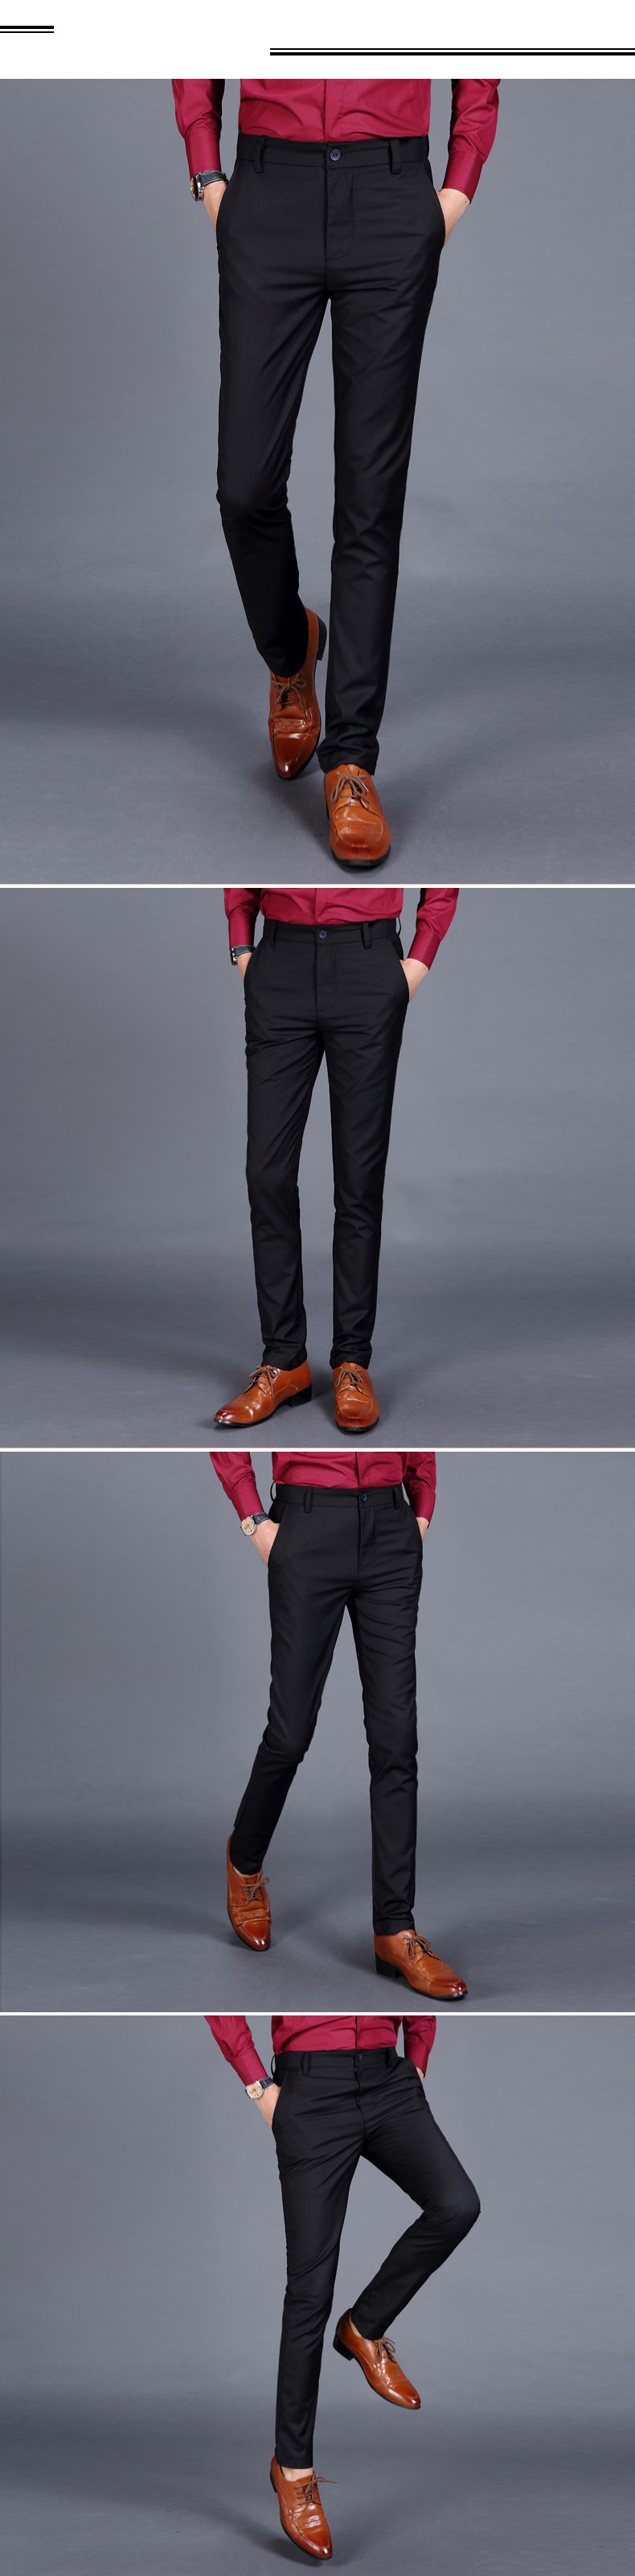 H15a72587d3e8467ab70ff1dbe9a96726V HCXY 2019 Summer Men's Smart Casual Pants Men Slim Straight Suit Pants Male Trousers Thin Smooth fabric Solid classic trousers